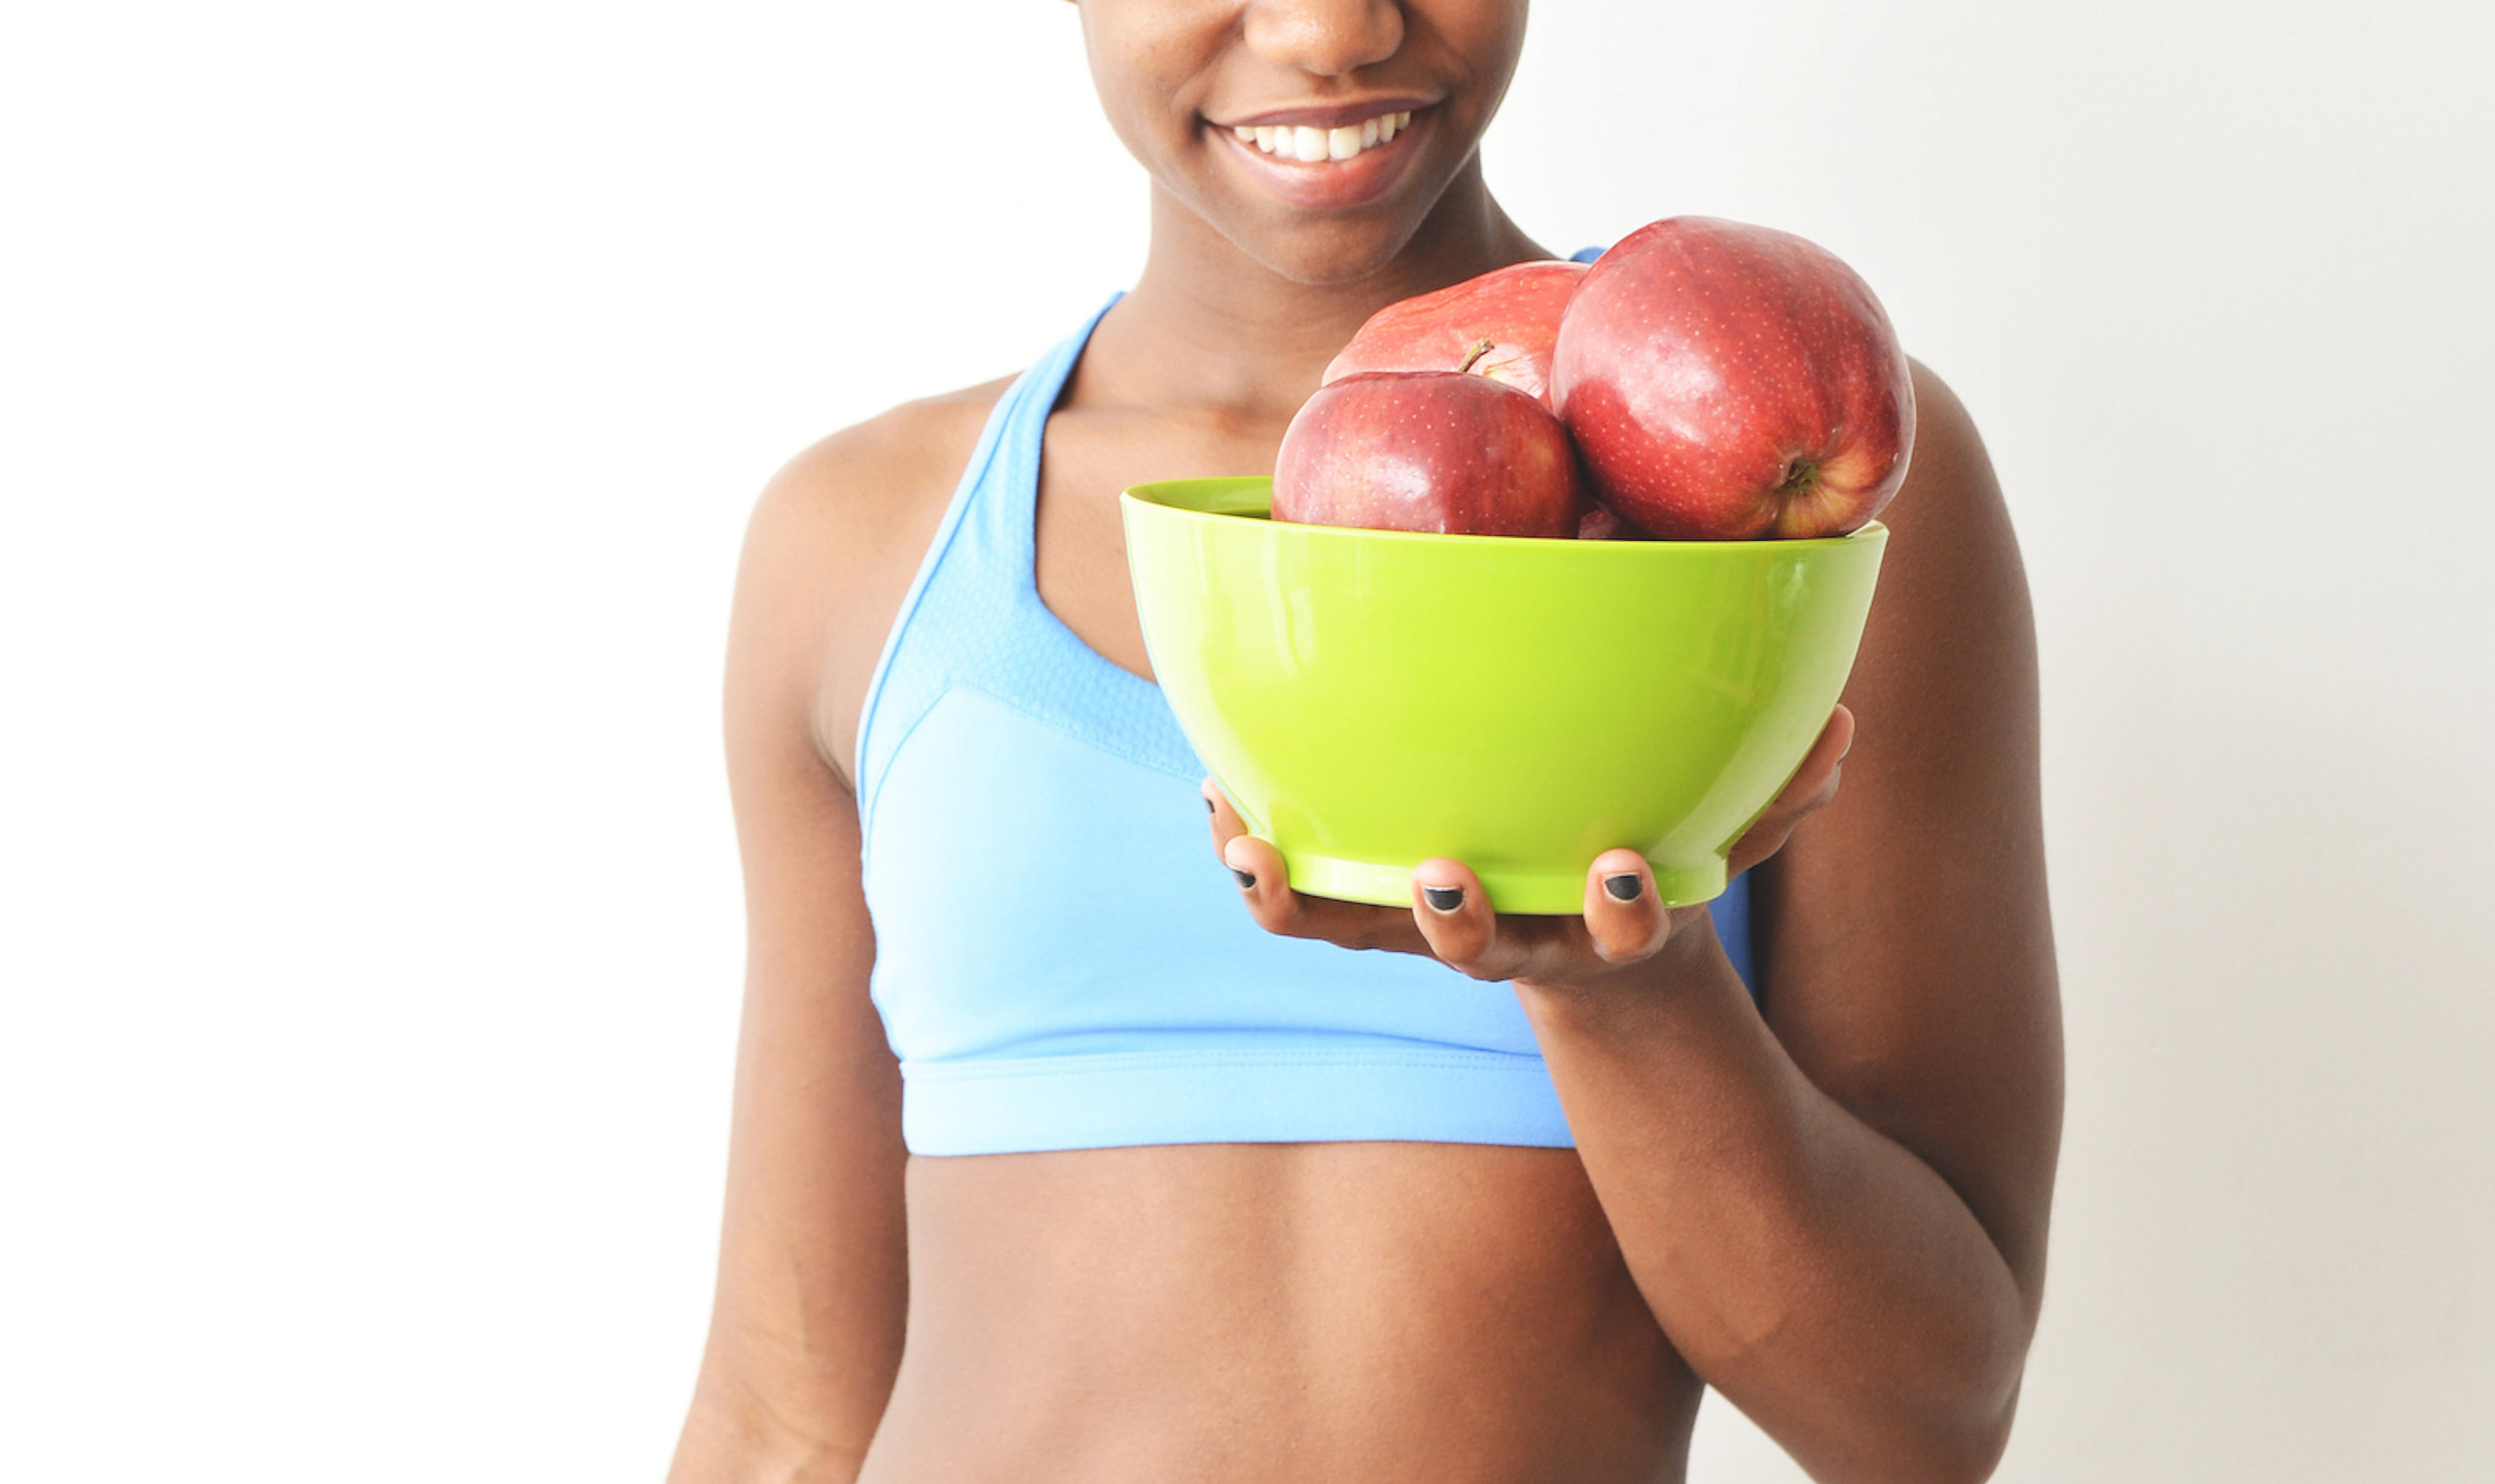 10 Simple Steps to a Healthier You